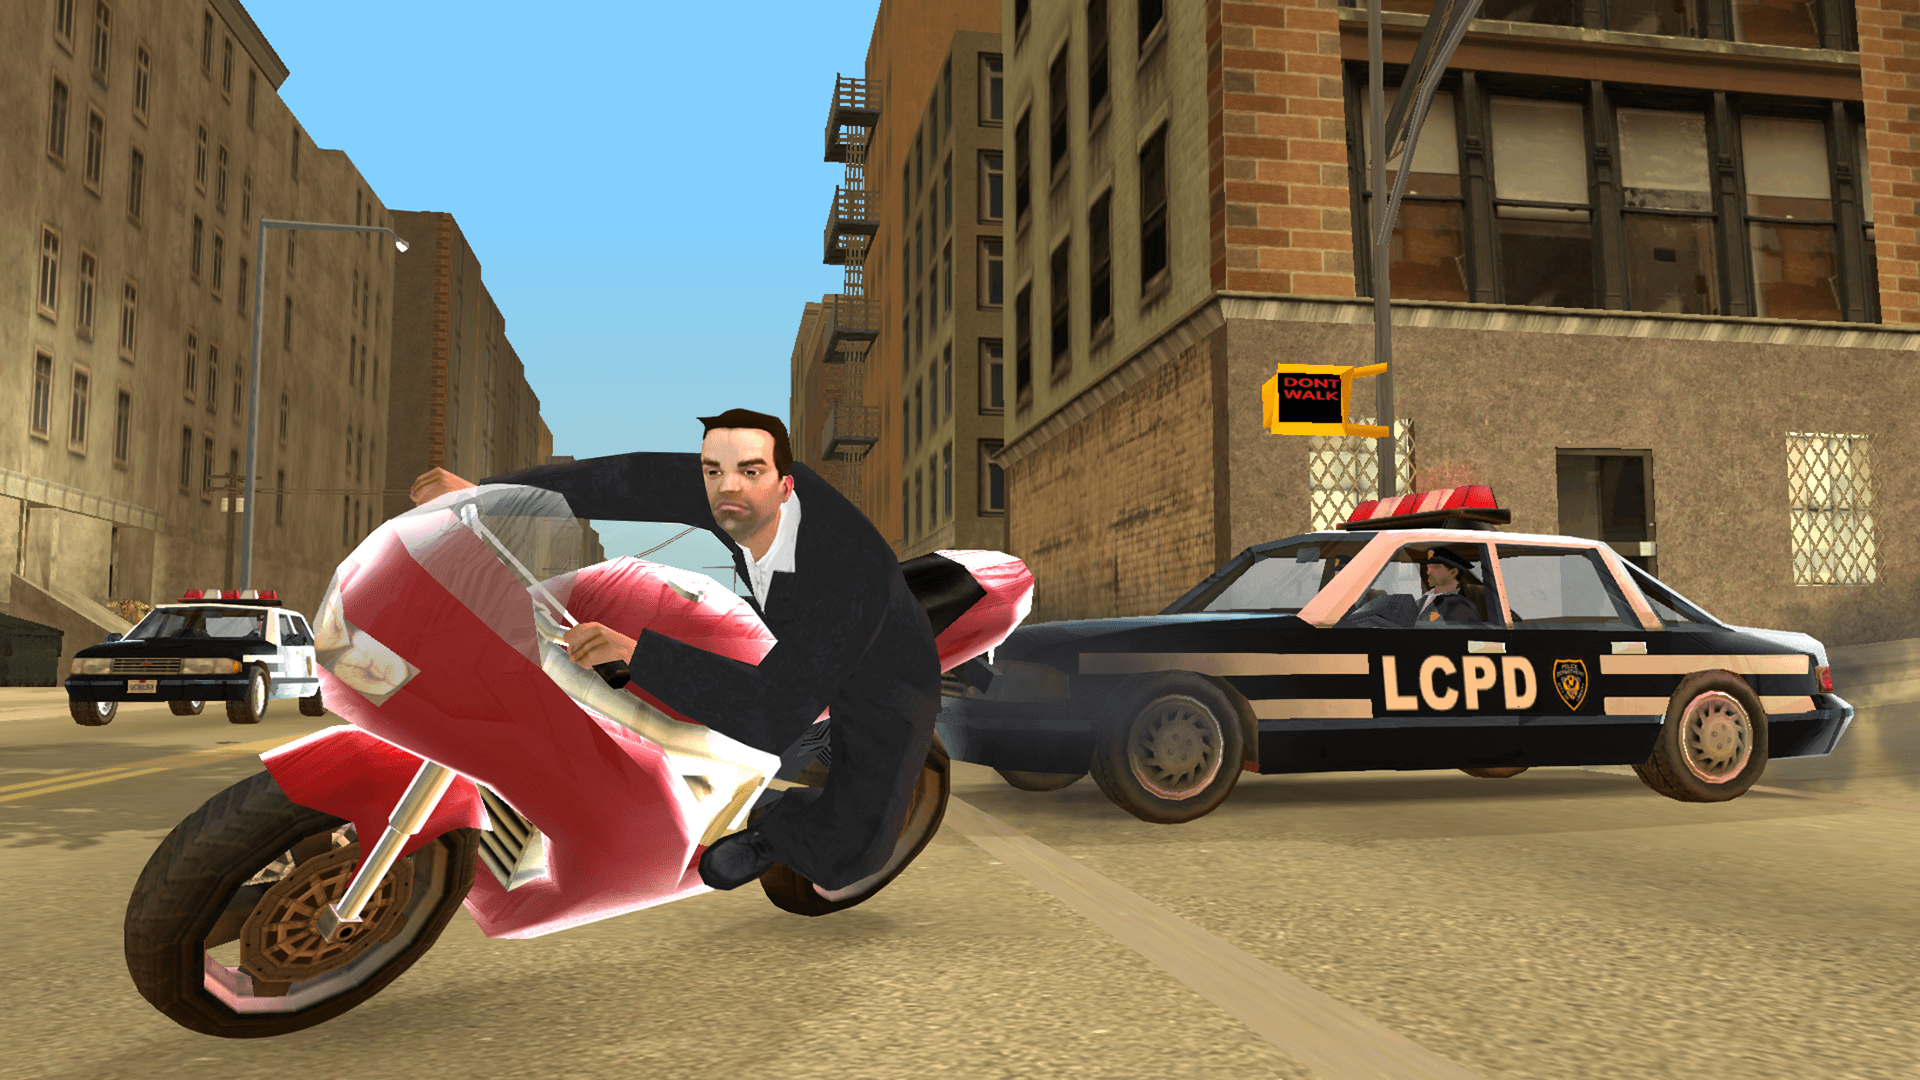 Download Grand Theft Auto: Liberty City Stories on PC with